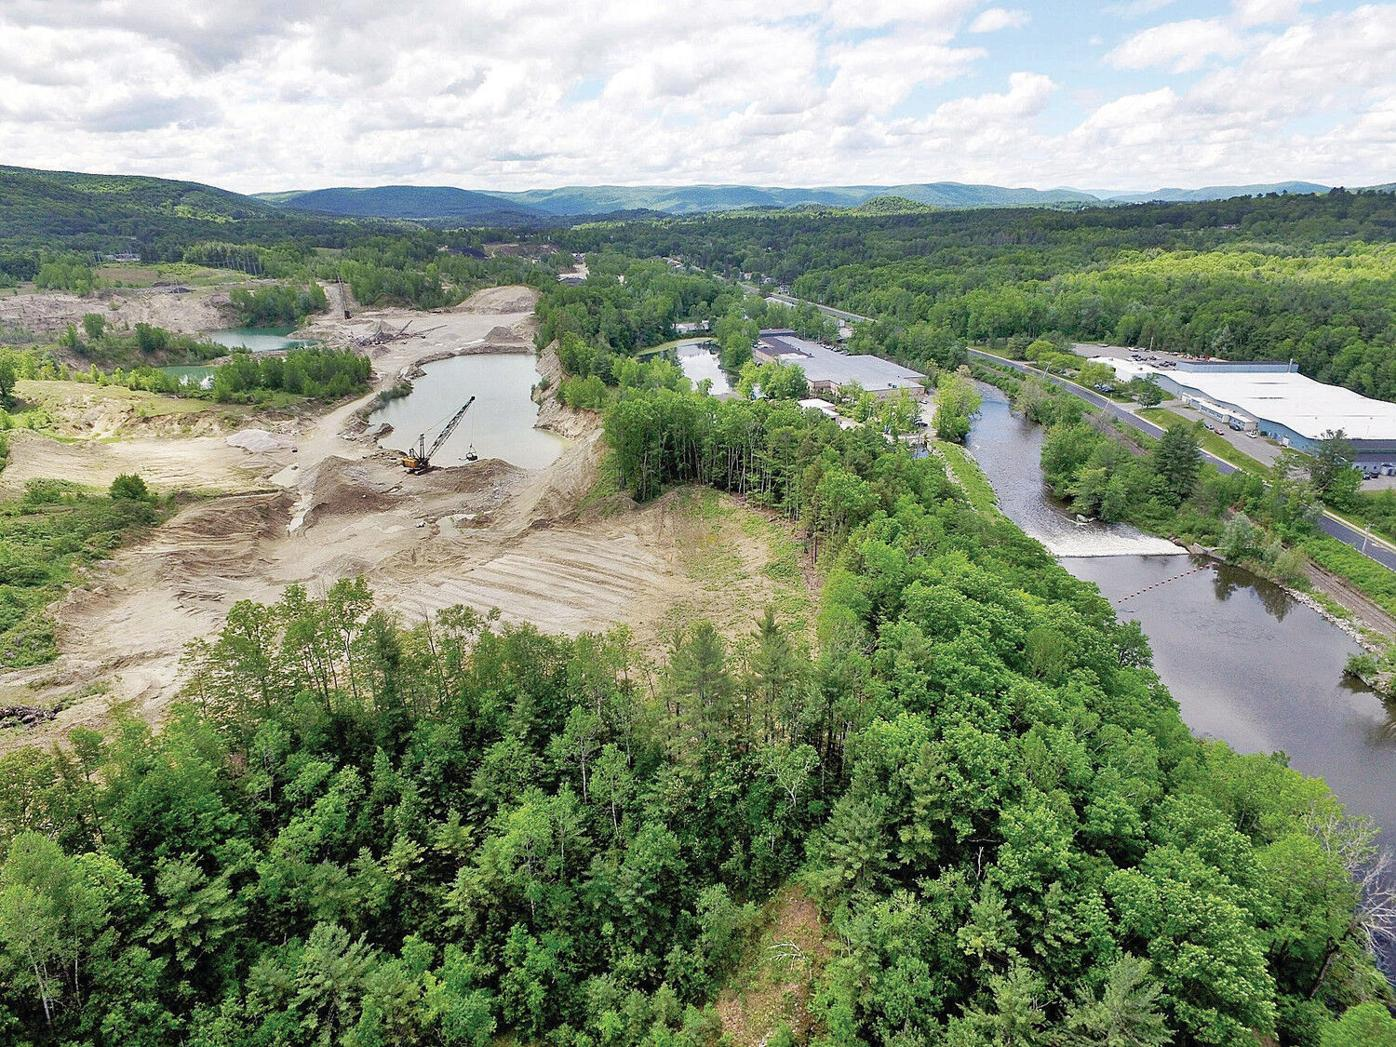 Regional EPA chief seeks quick action on Housatonic River cleanup